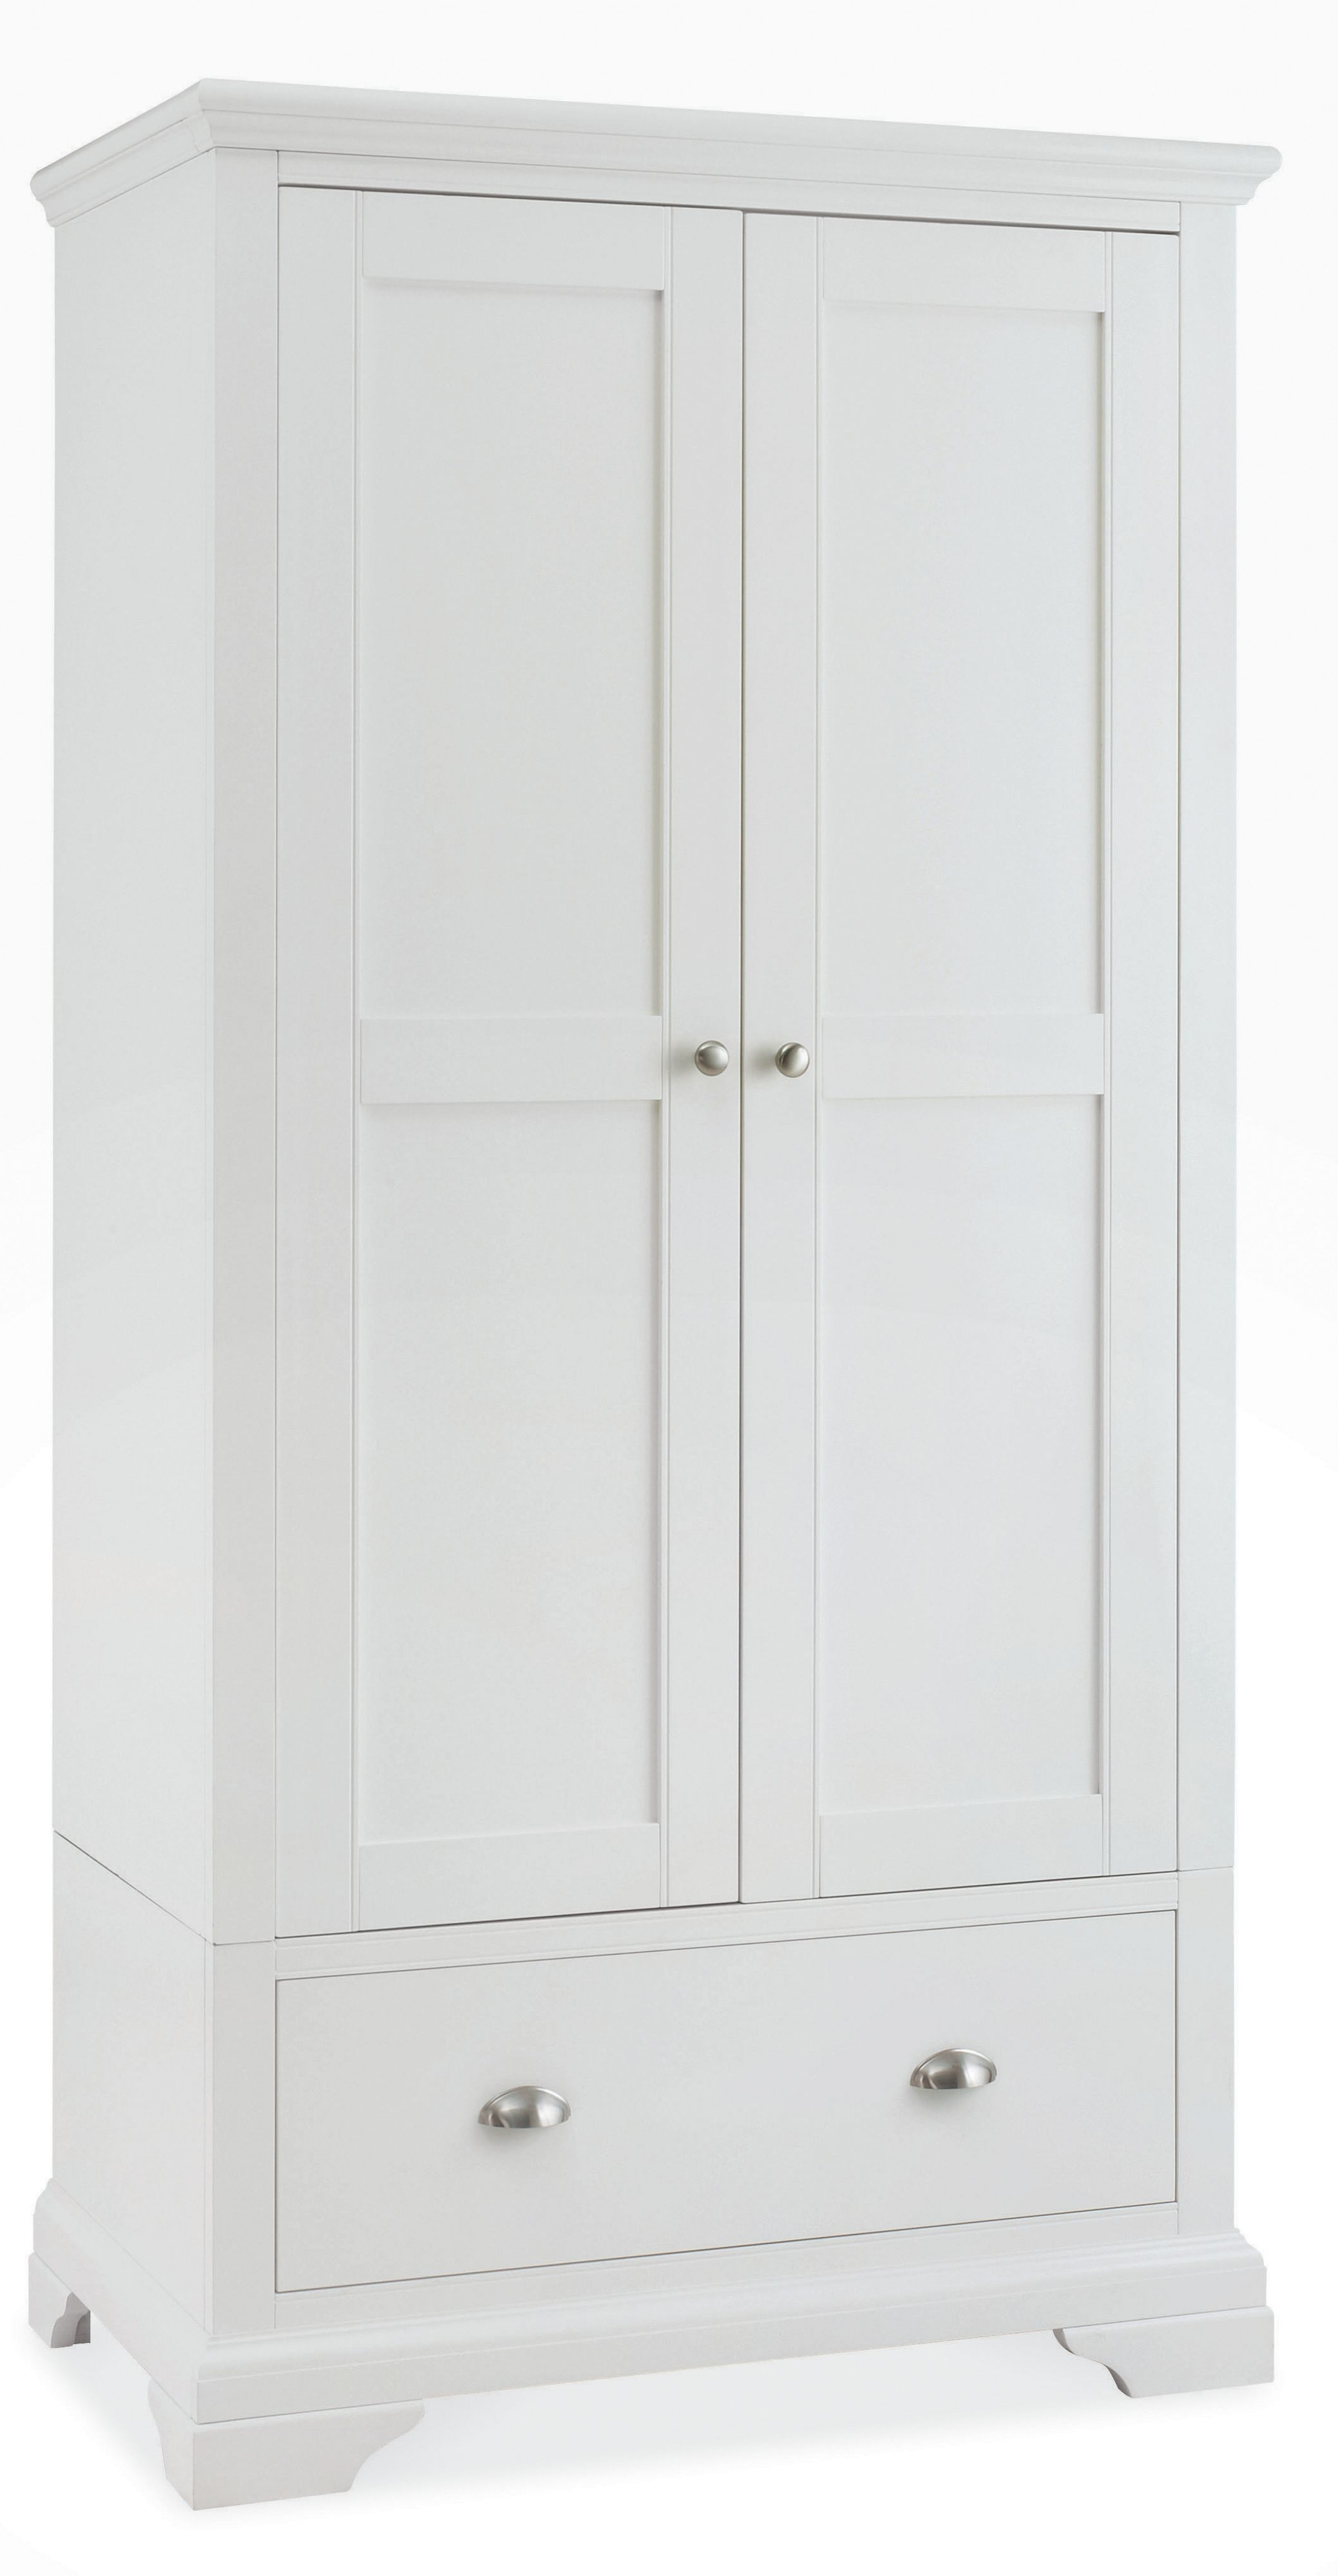 White Wardrobes Linea Etienne Double Wardrobe With Drawer House Of Fraser Sbwmkay